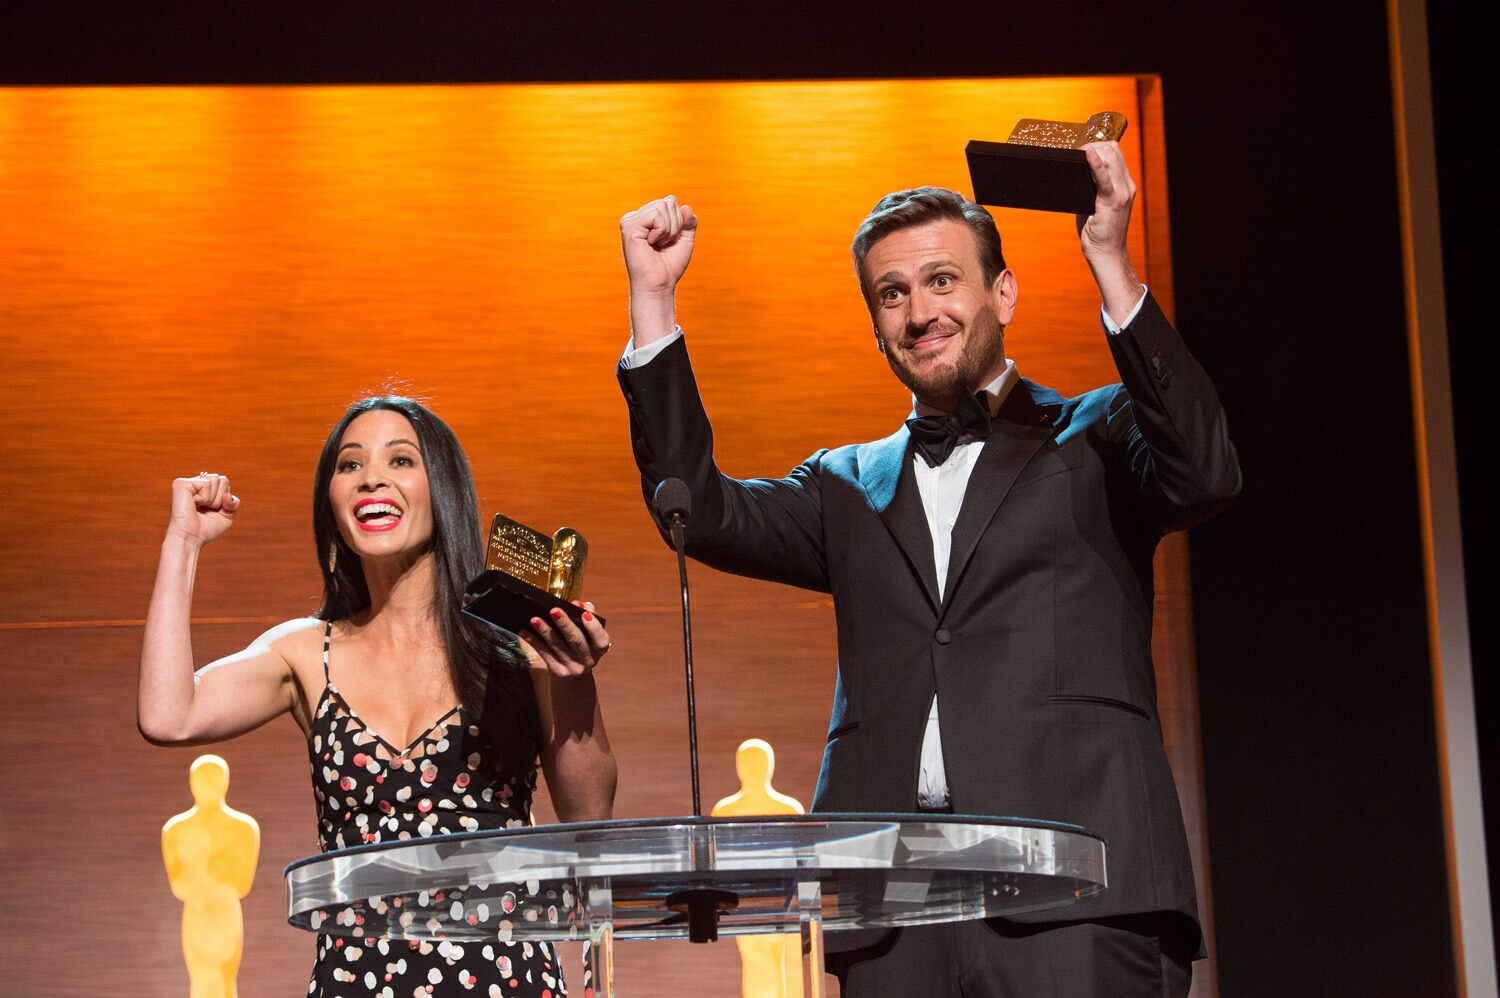 Hosts Olivia Munn and Jason Segel